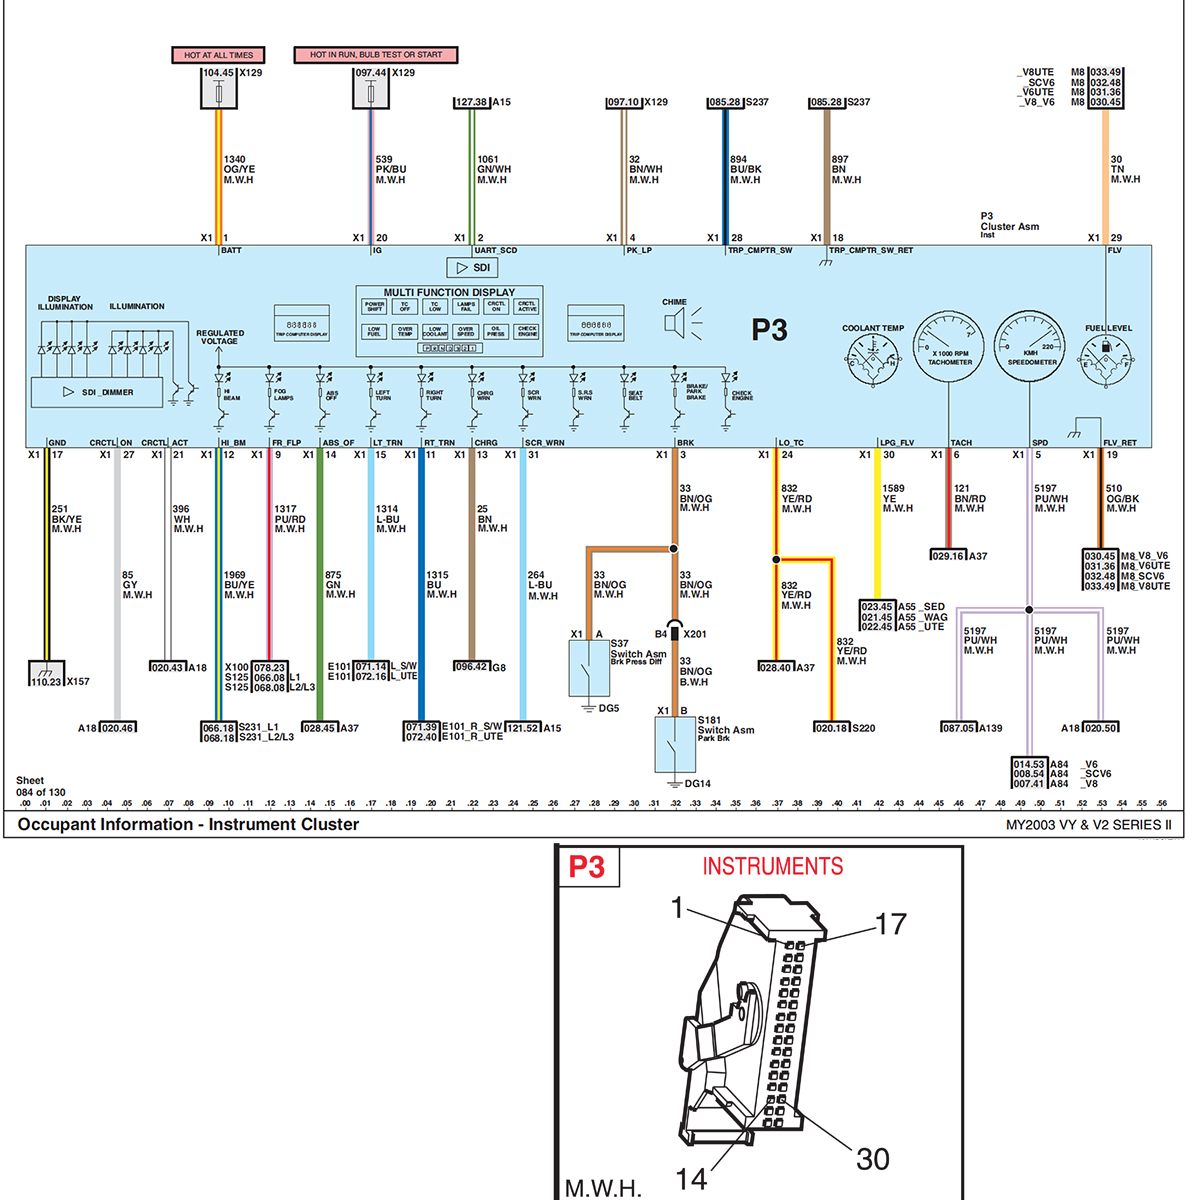 vy instrument cluster pinout wiring diagram just commodores rh forums justcommodores com au instrument cluster wiring diagram 2004 silverado instrument cluster wiring diagram 2004 silverado